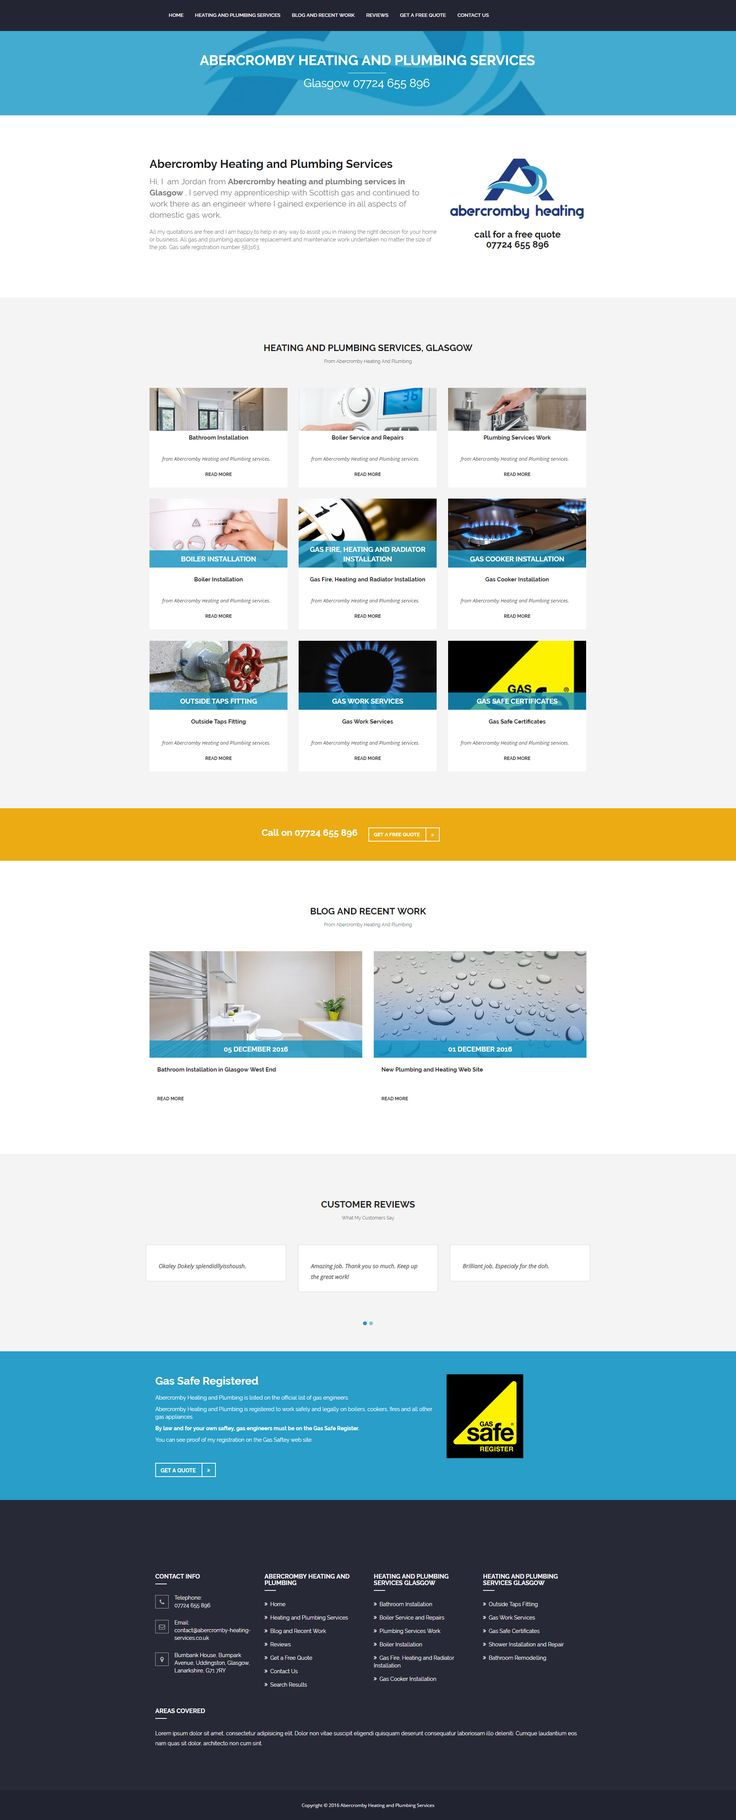 Plumber web site design.   Developed using Bootstrap and Umbraco CMS as part of my East Kilbride Website Design and Development services, Glasgow, in Scotland.